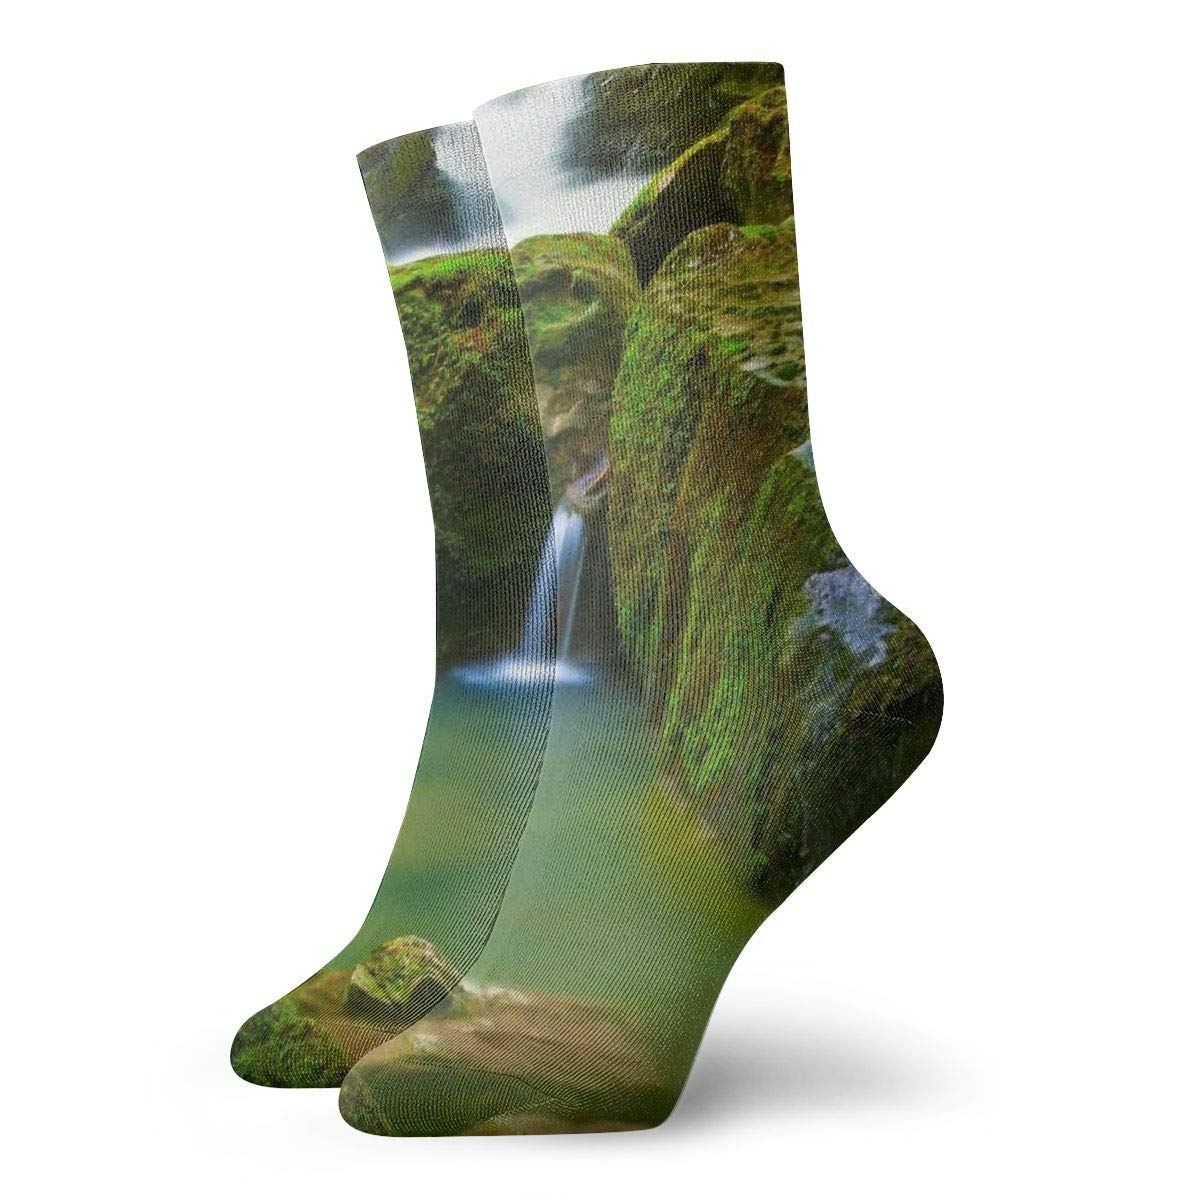 WEEDKEYCAT Beautiful Waterfall Stone Nature Landscape Adult Short Socks Cotton Cozy Socks for Mens Womens Yoga Hiking Cycling Running Soccer Sports